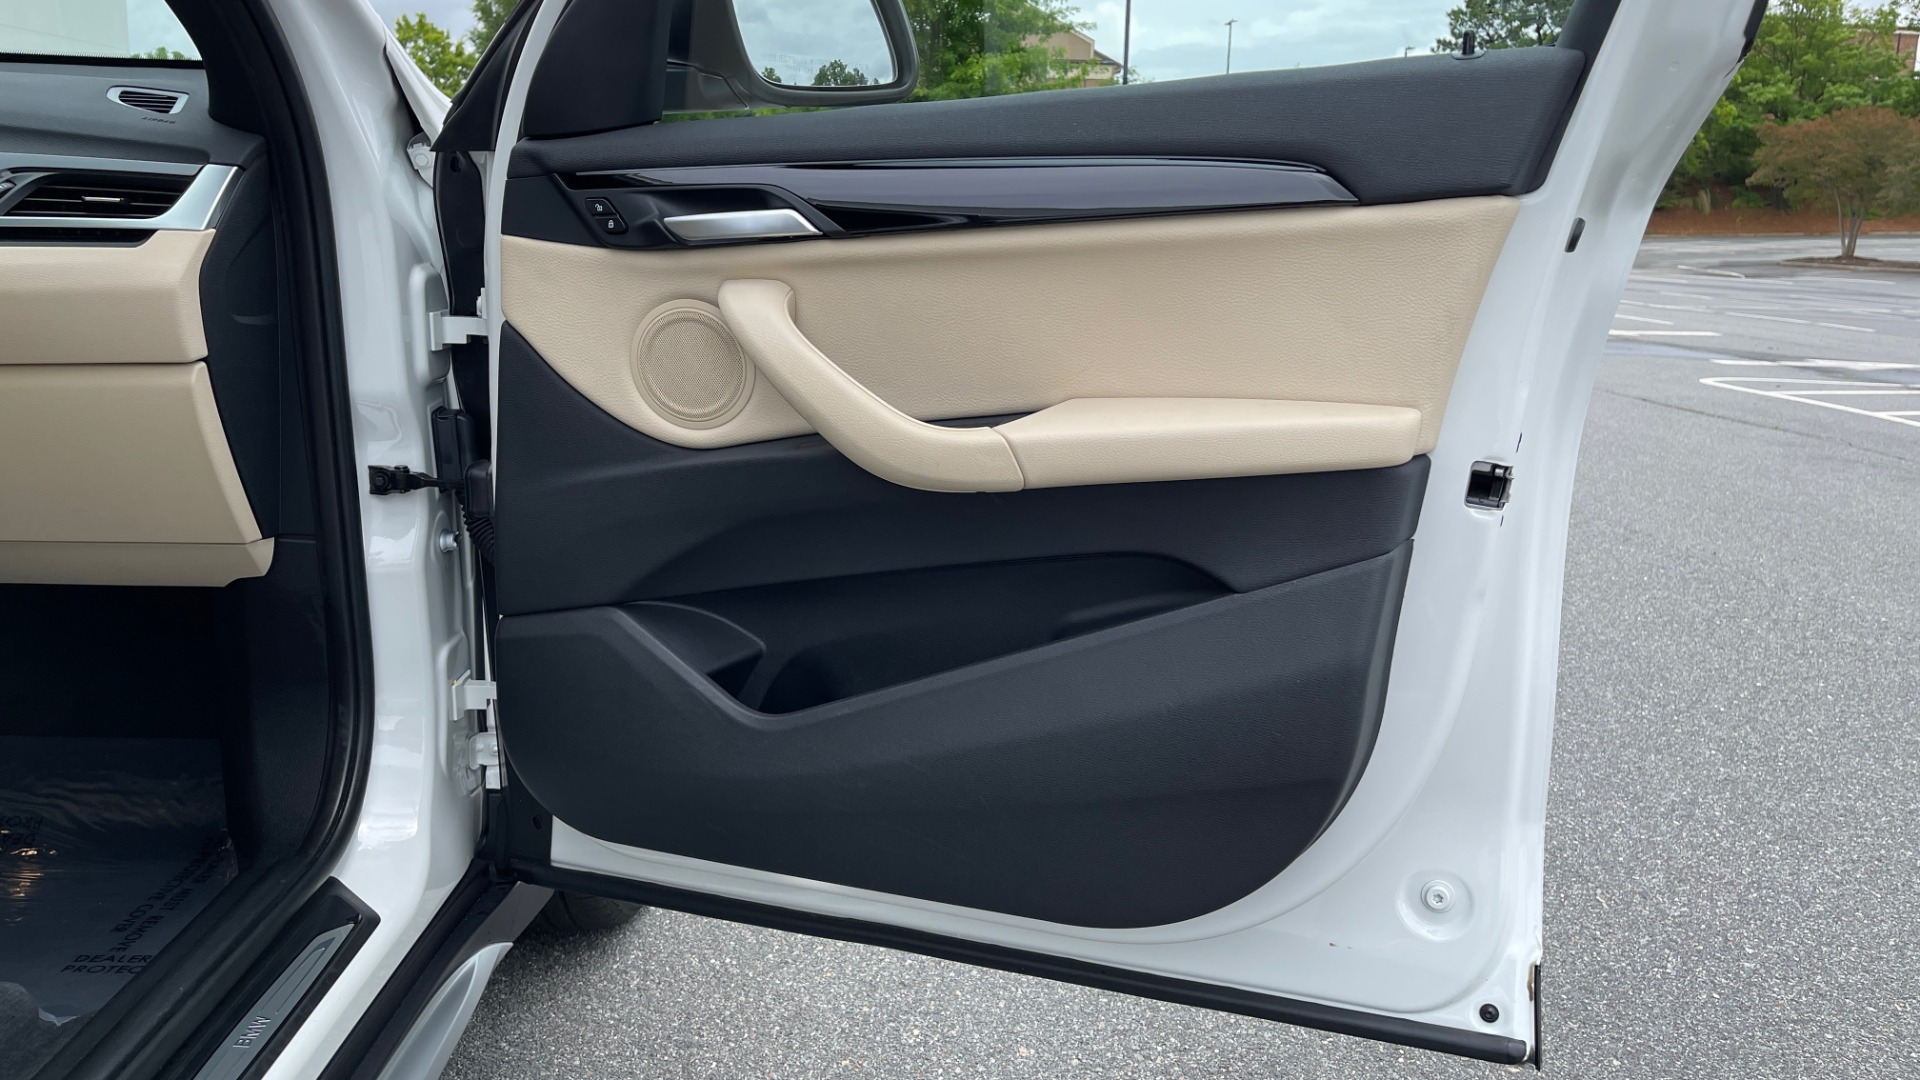 Used 2018 BMW X1 XDRIVE28I / CONV PKG / PANO-ROOF / HTD STS / PARK ASST / REARVIEW for sale $30,995 at Formula Imports in Charlotte NC 28227 79